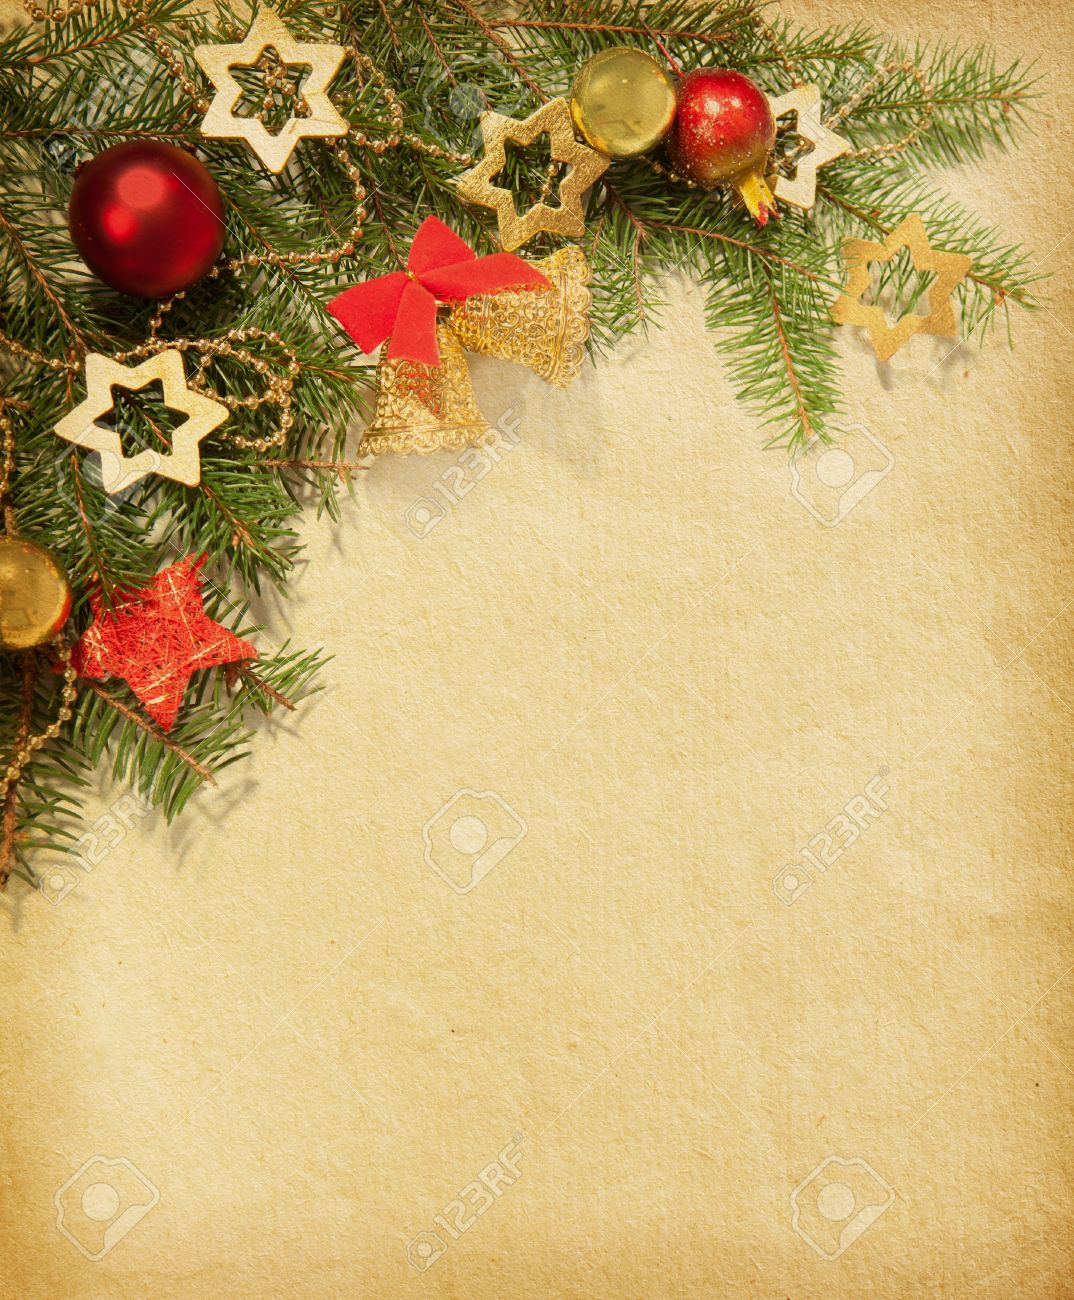 Christmas Vintage Border Old Paper Stock Photo, Picture And ...